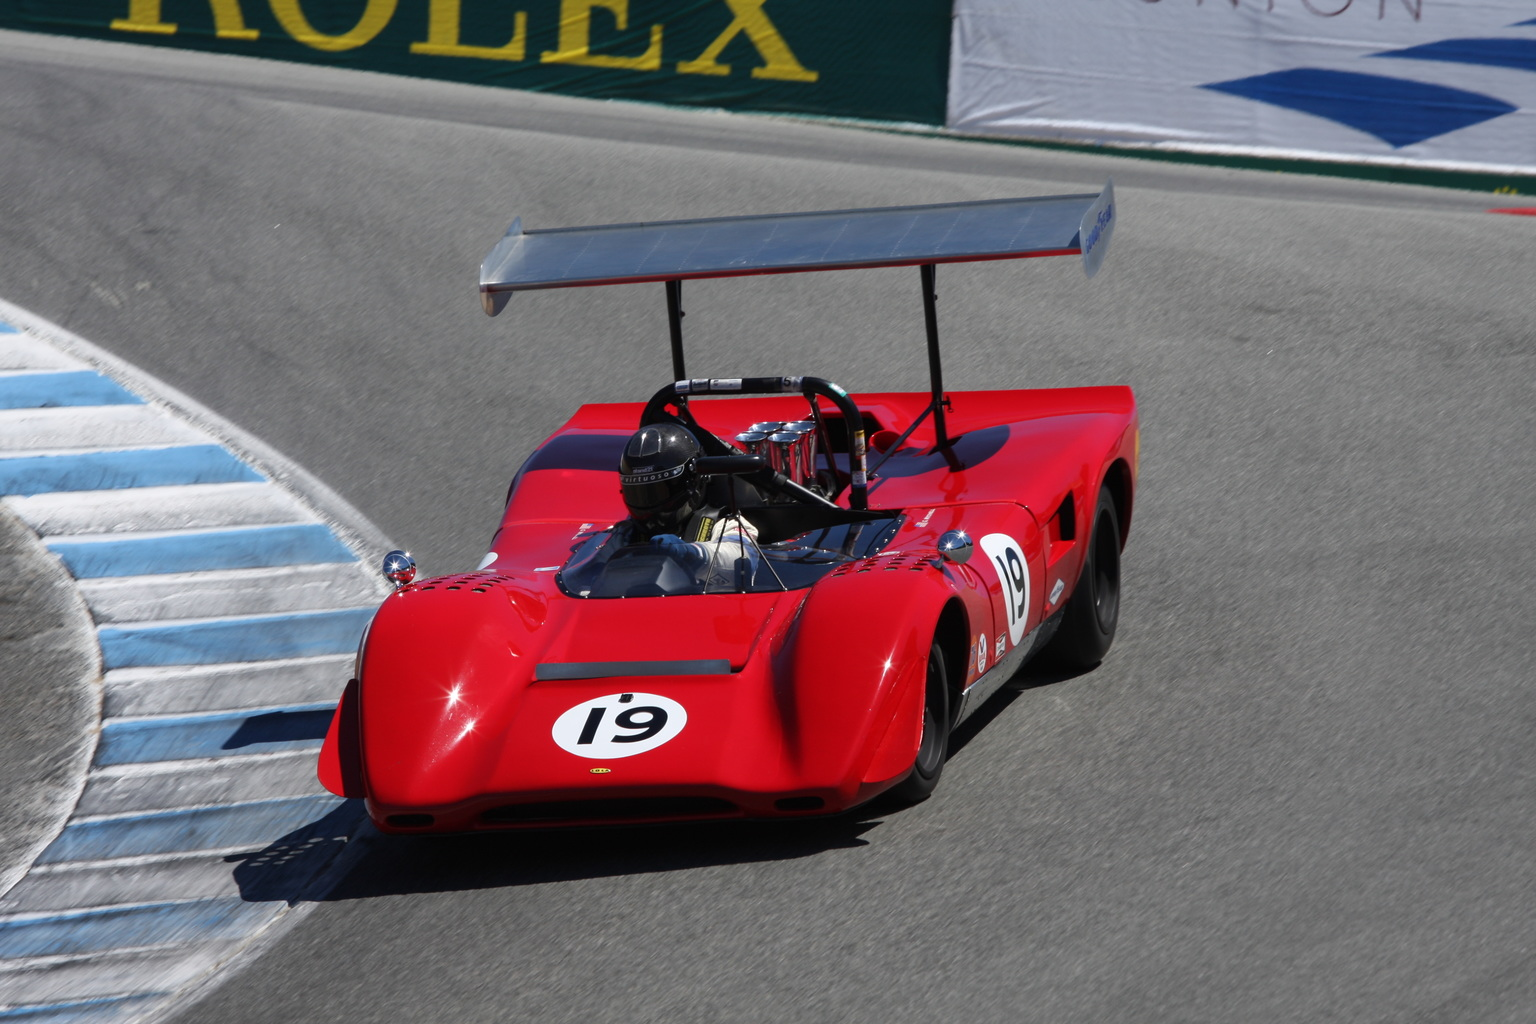 1969 Lola T163 | Review | SuperCars.net